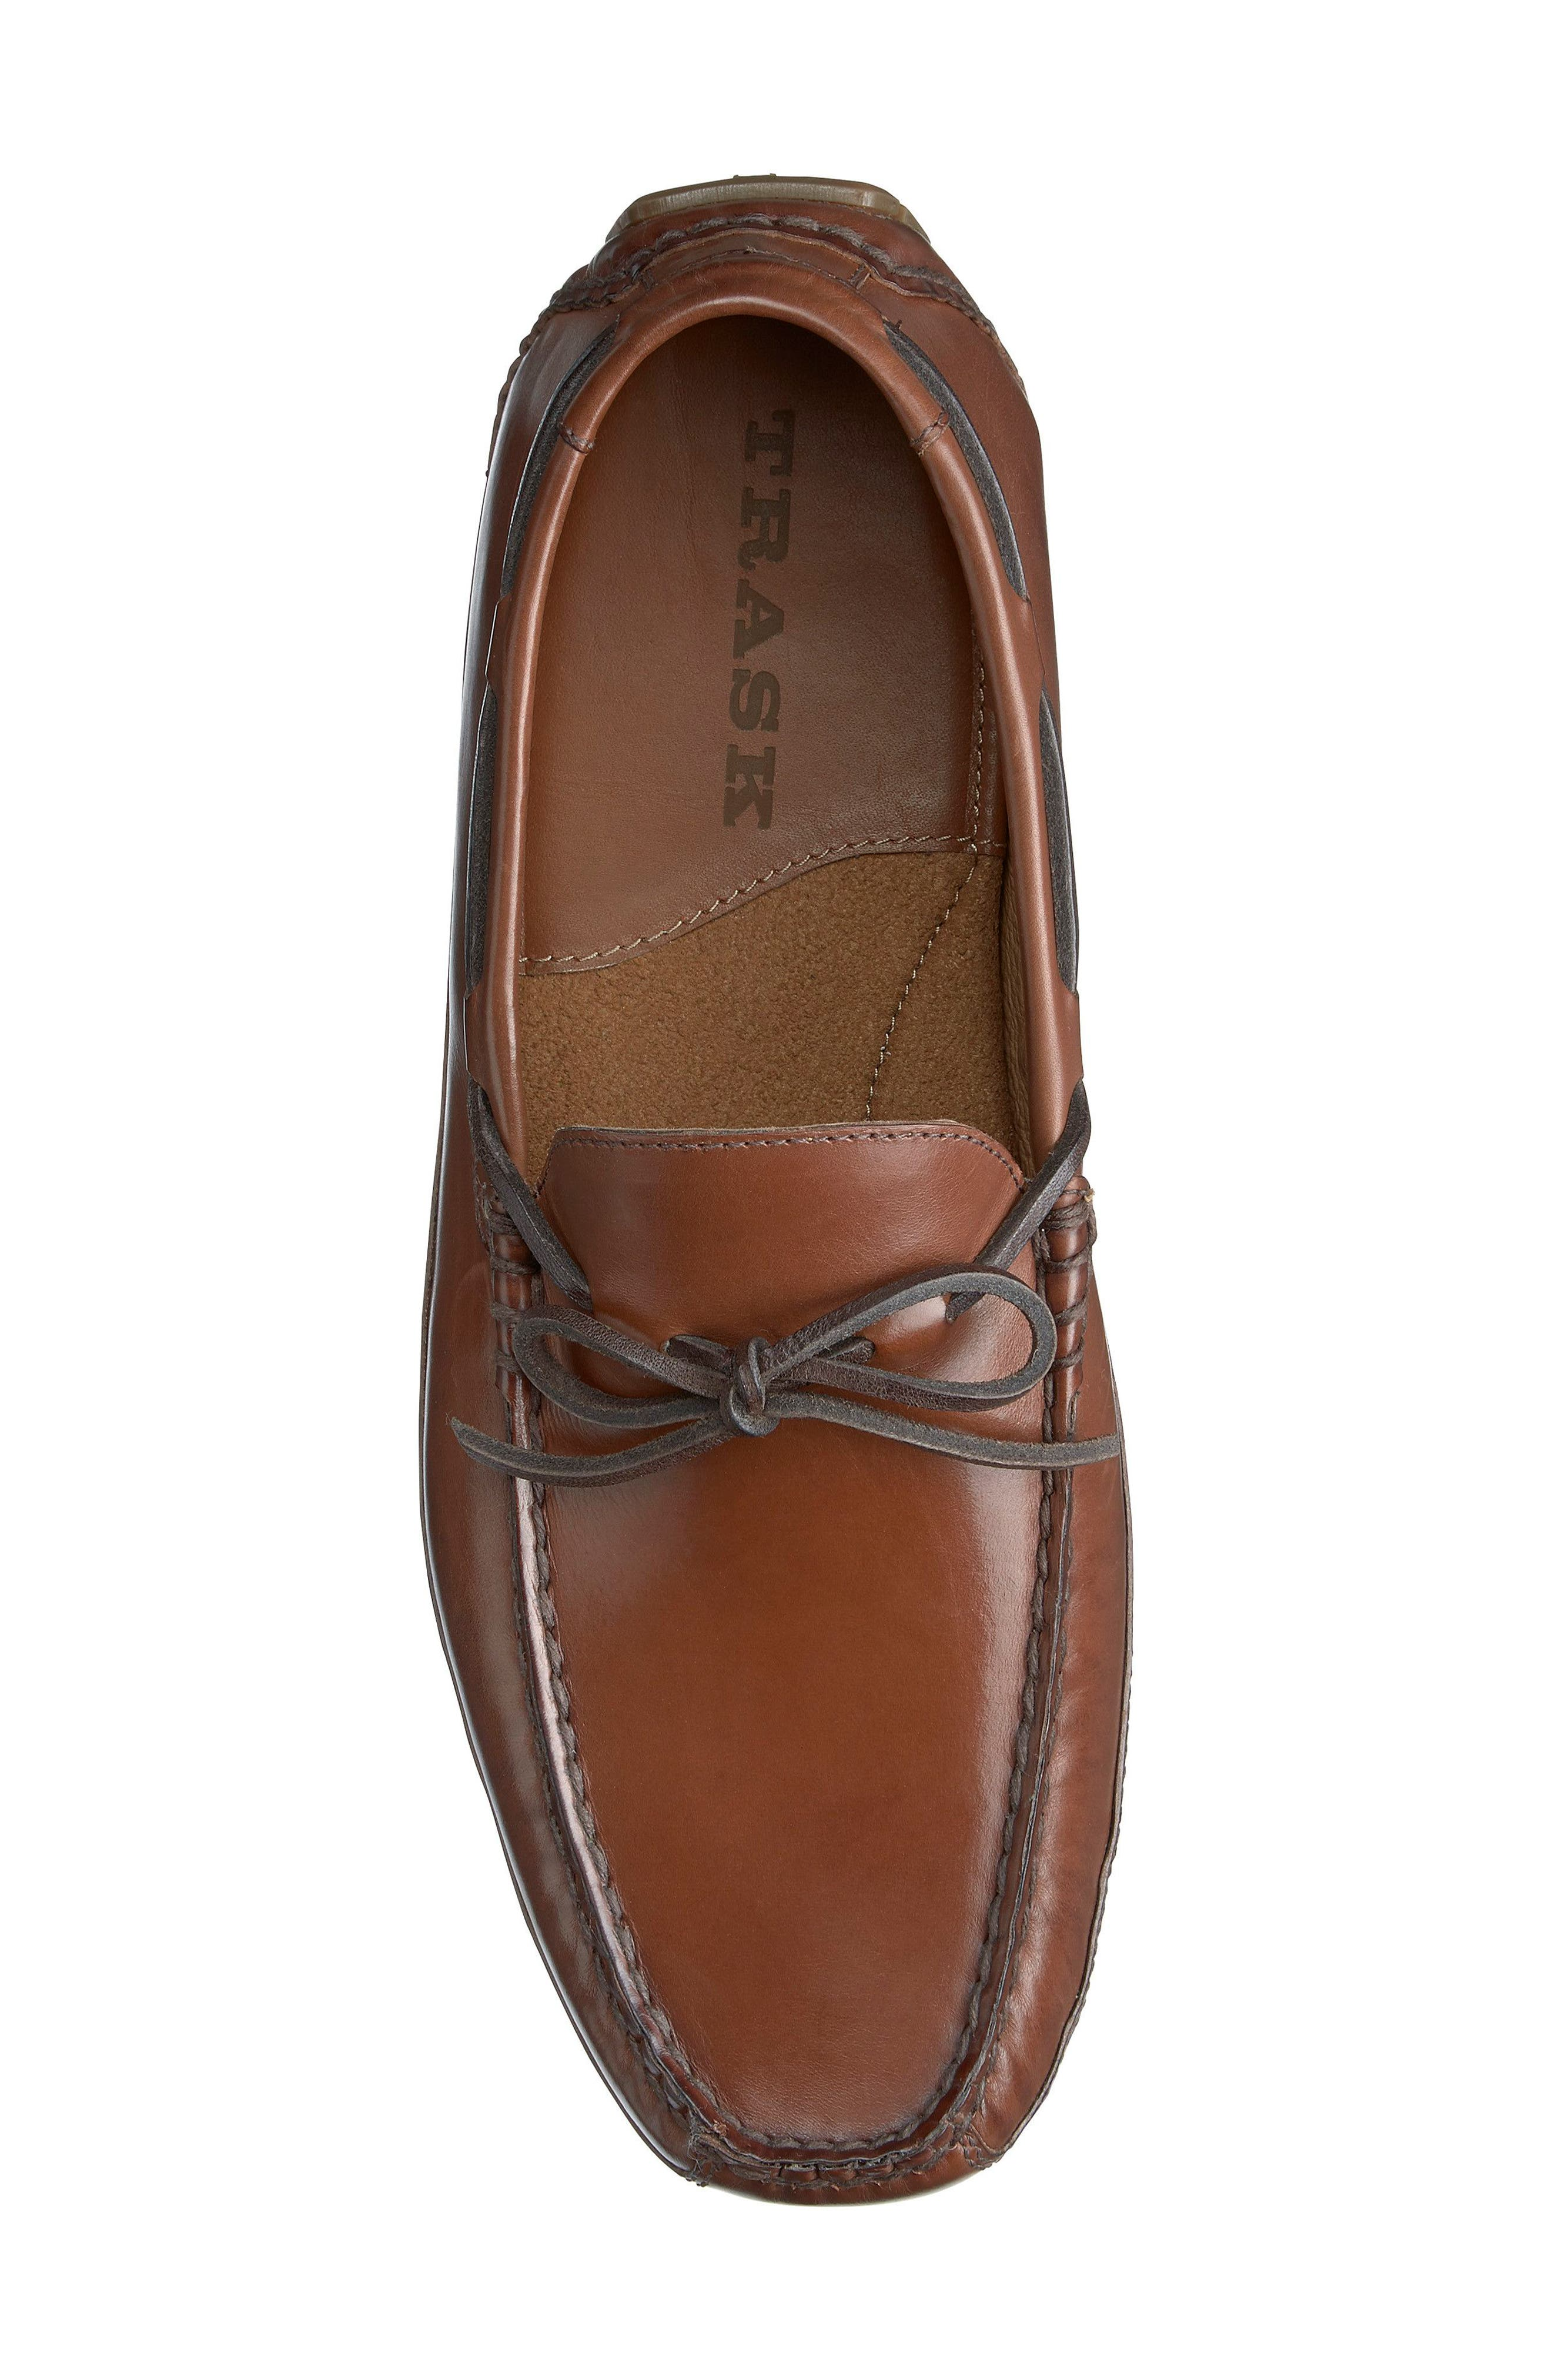 Dillion Driving Loafer,                             Alternate thumbnail 4, color,                             BROWN LEATHER